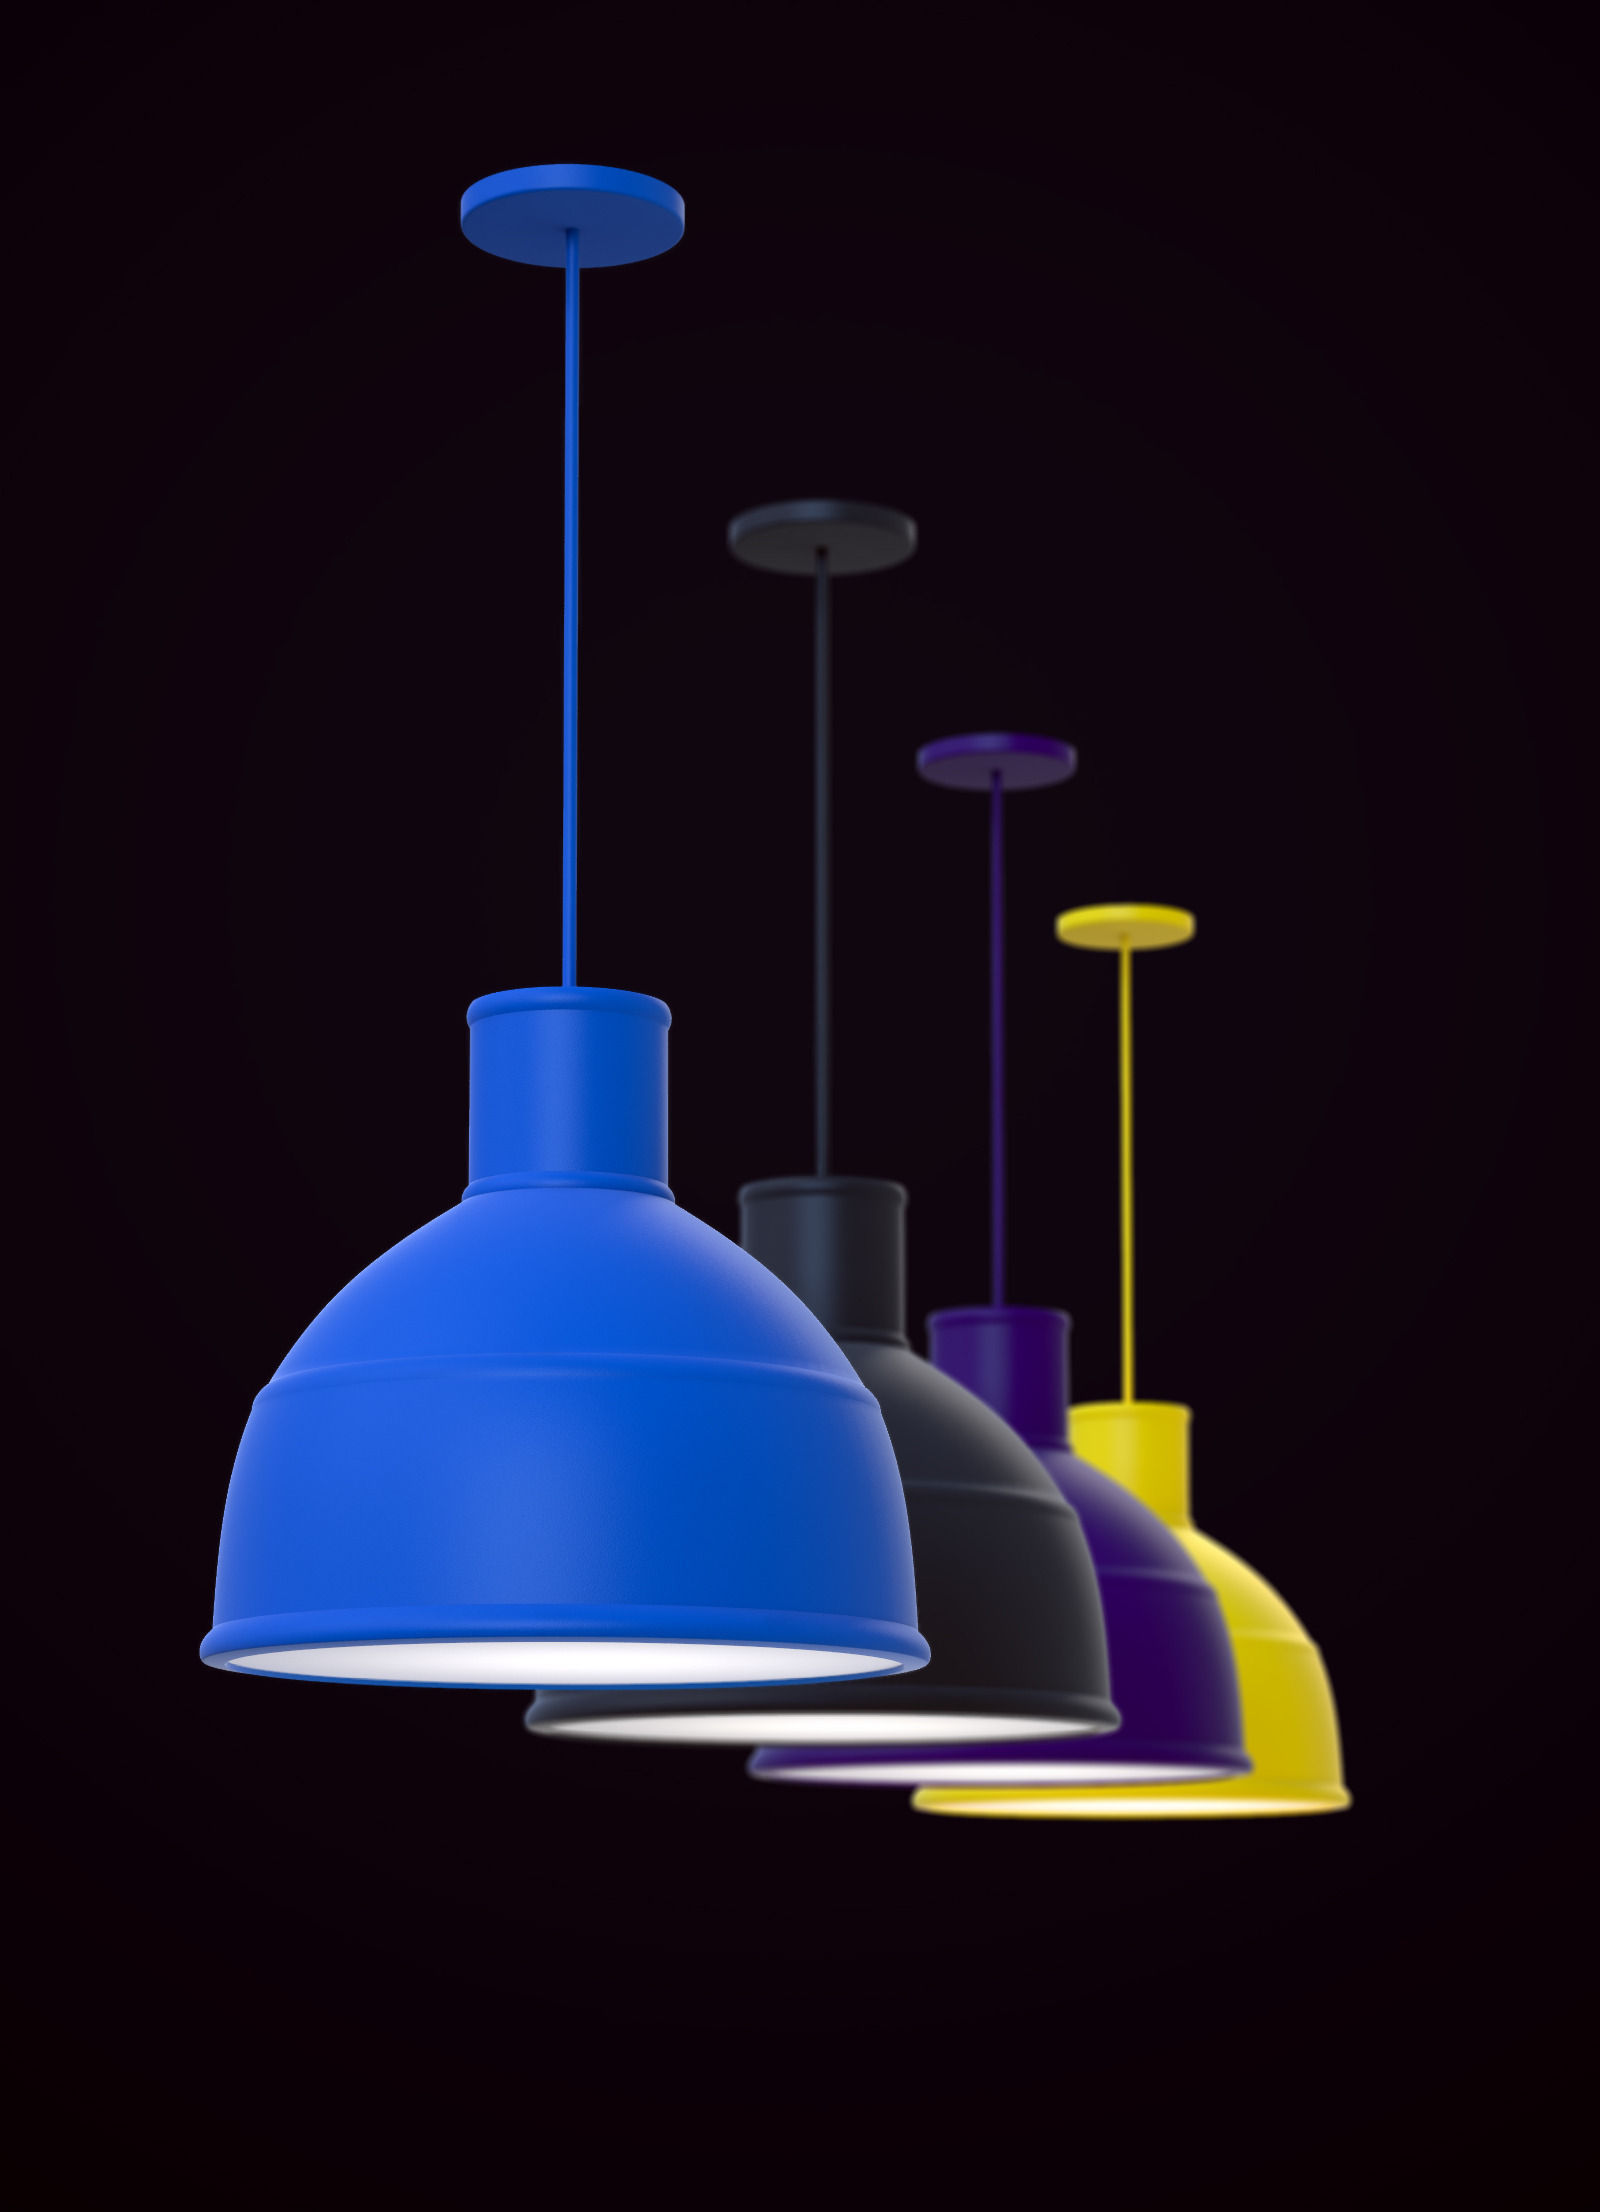 Muuto unfold hanging lamp 3d cgtrader muuto unfold hanging lamp 3d model max 3 mozeypictures Gallery